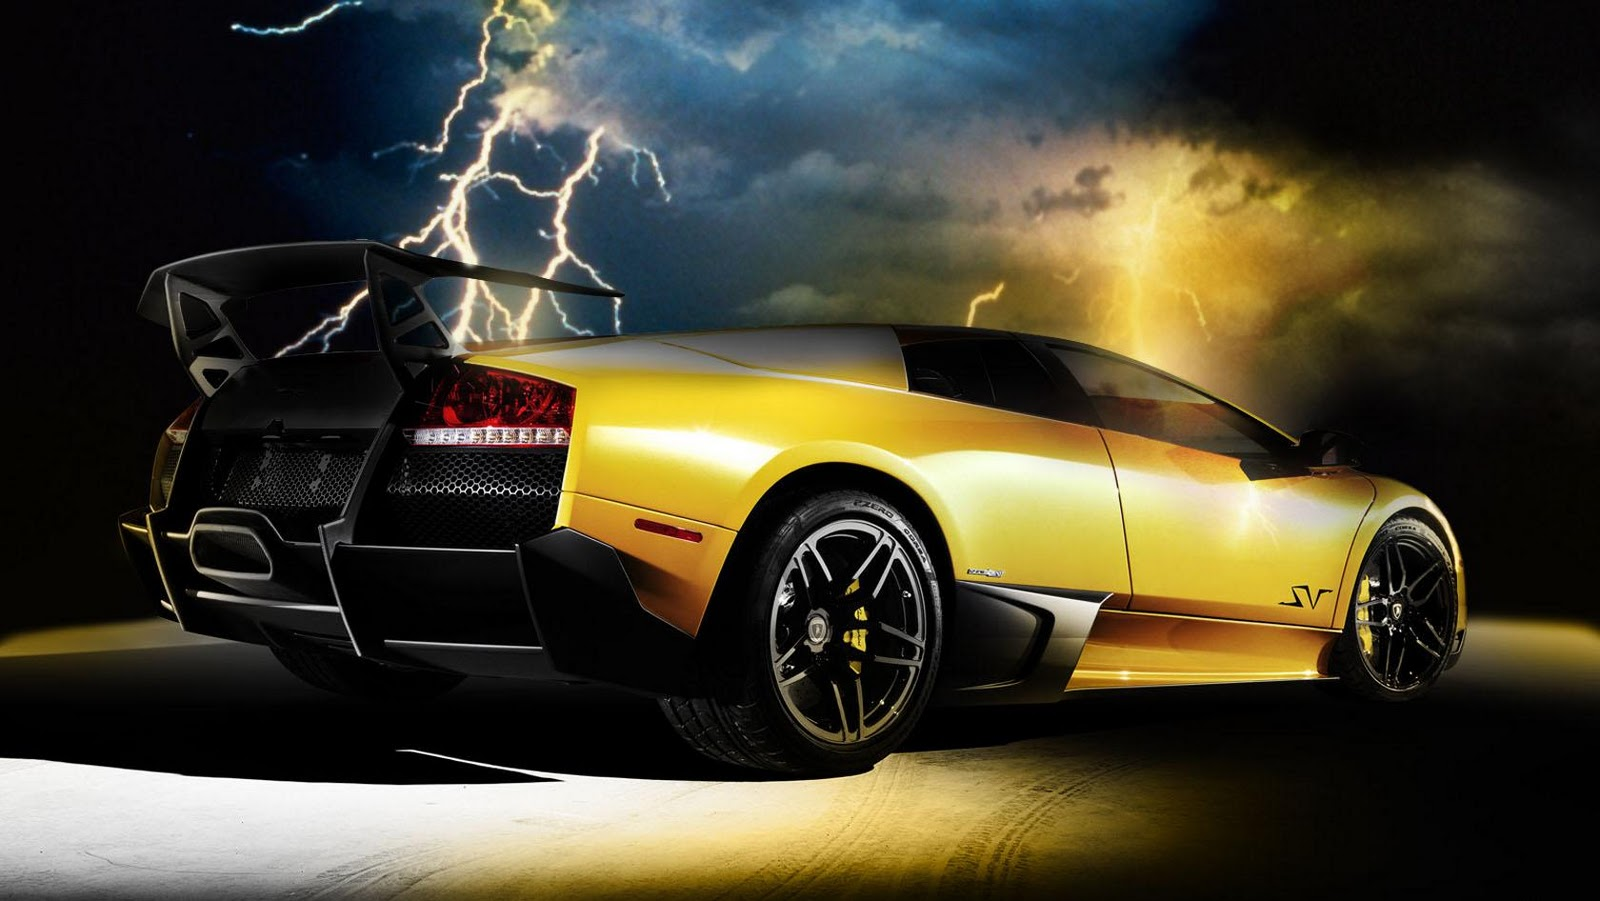 HD car Wallpapers is the no1 source of Car wallpapers 1600x901